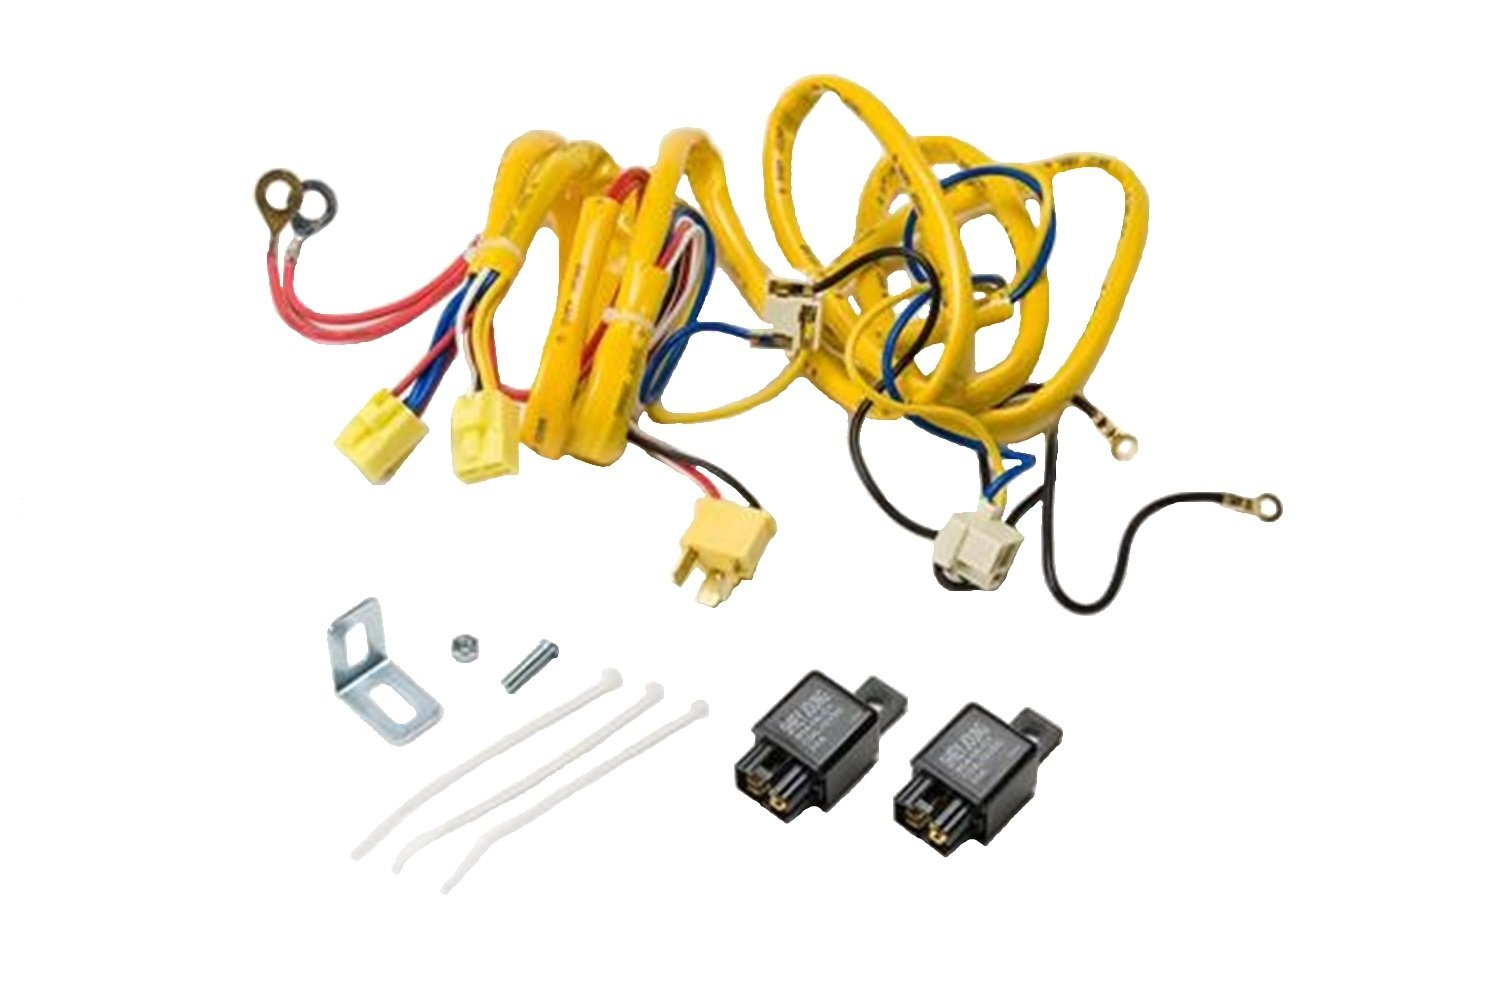 61lg%2BE3BKTL._SL1500_ amazon com putco 230004hw premium automotive lighting h4 100w h4 wiring harness jeep at eliteediting.co